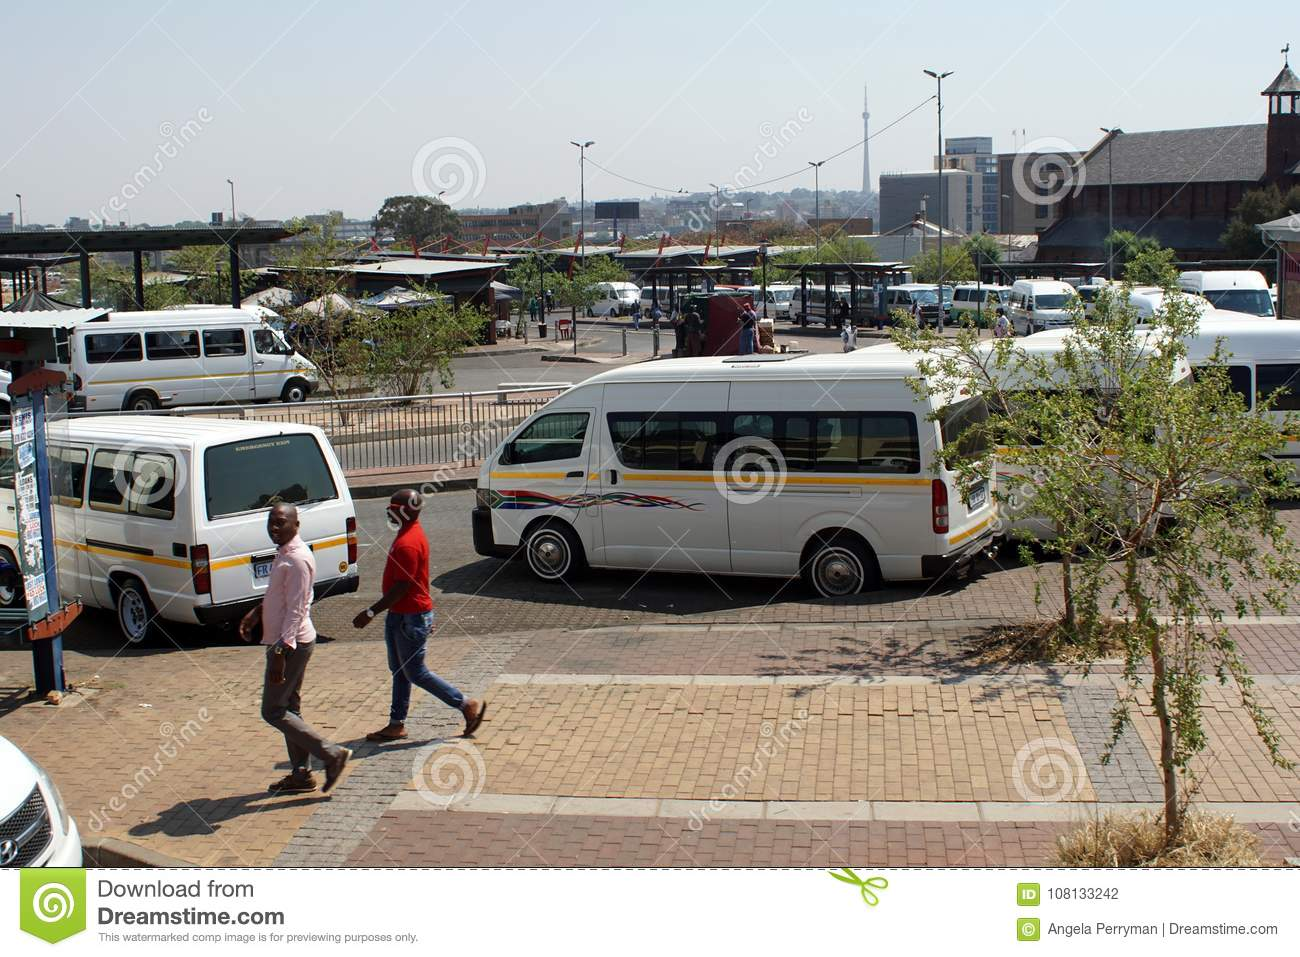 Taxi rank for shared vans in Johannesburg